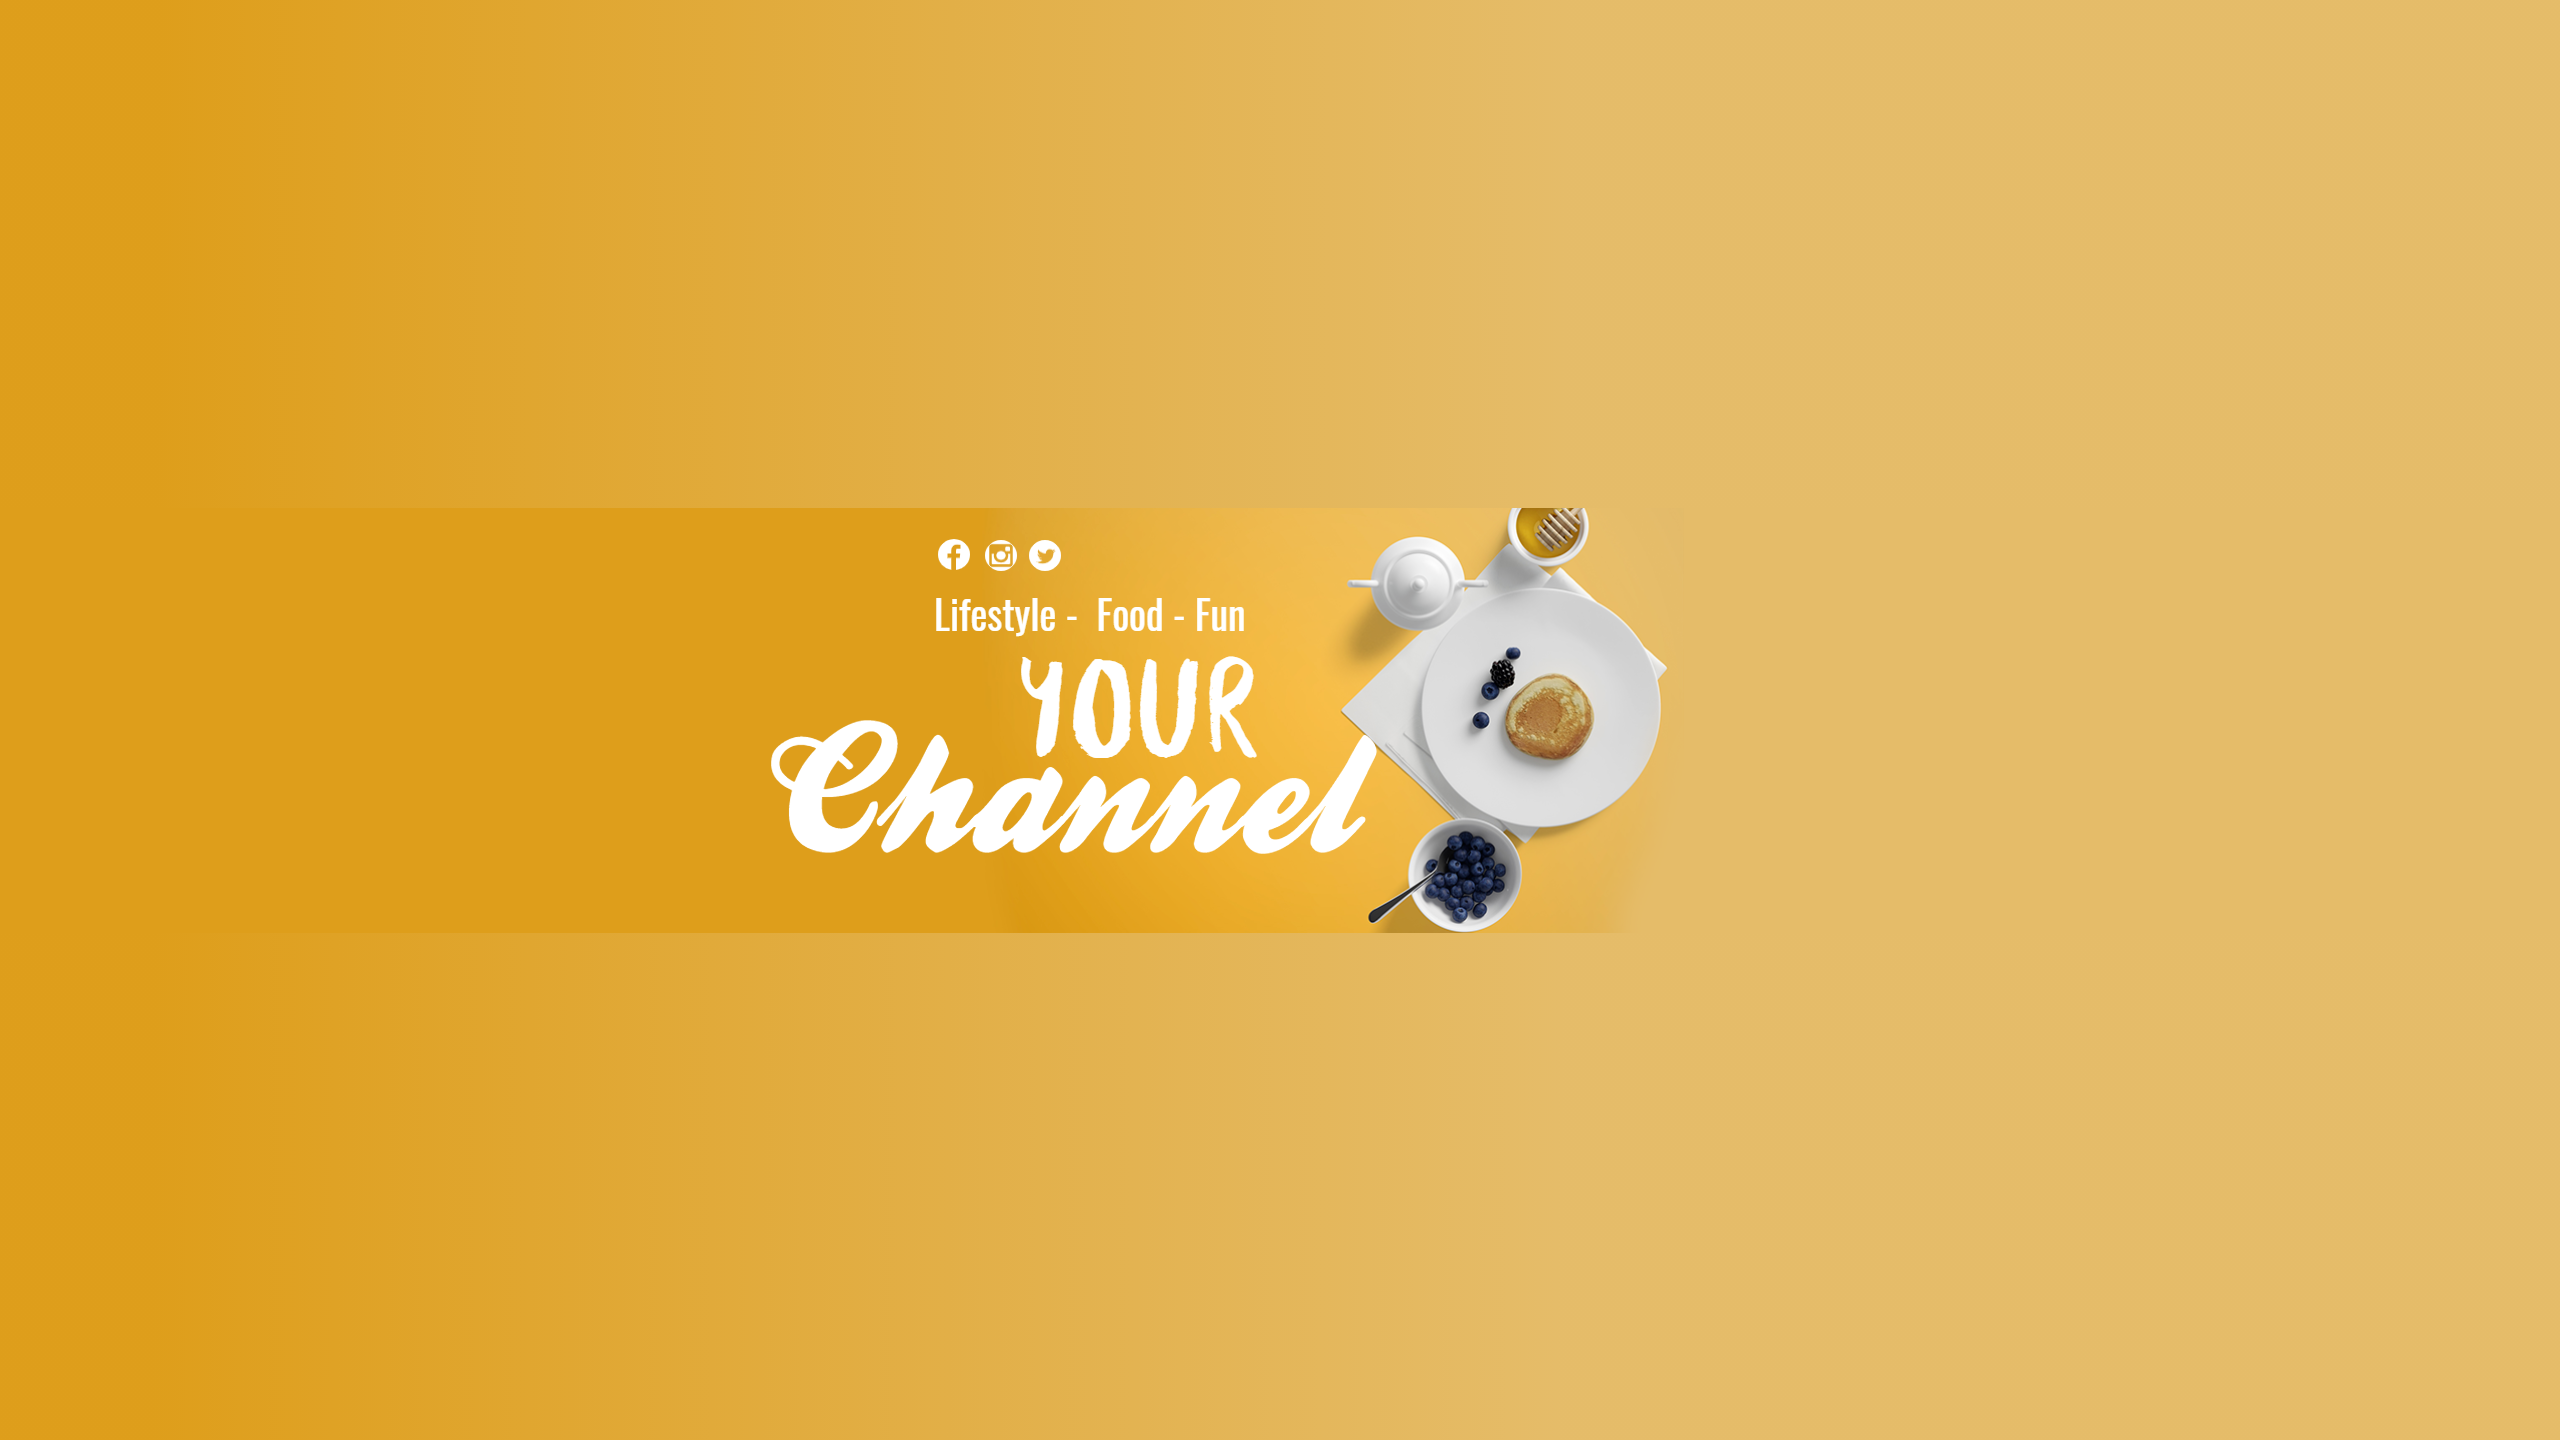 Youtube Lifestyle and Food Channel  Design  Template